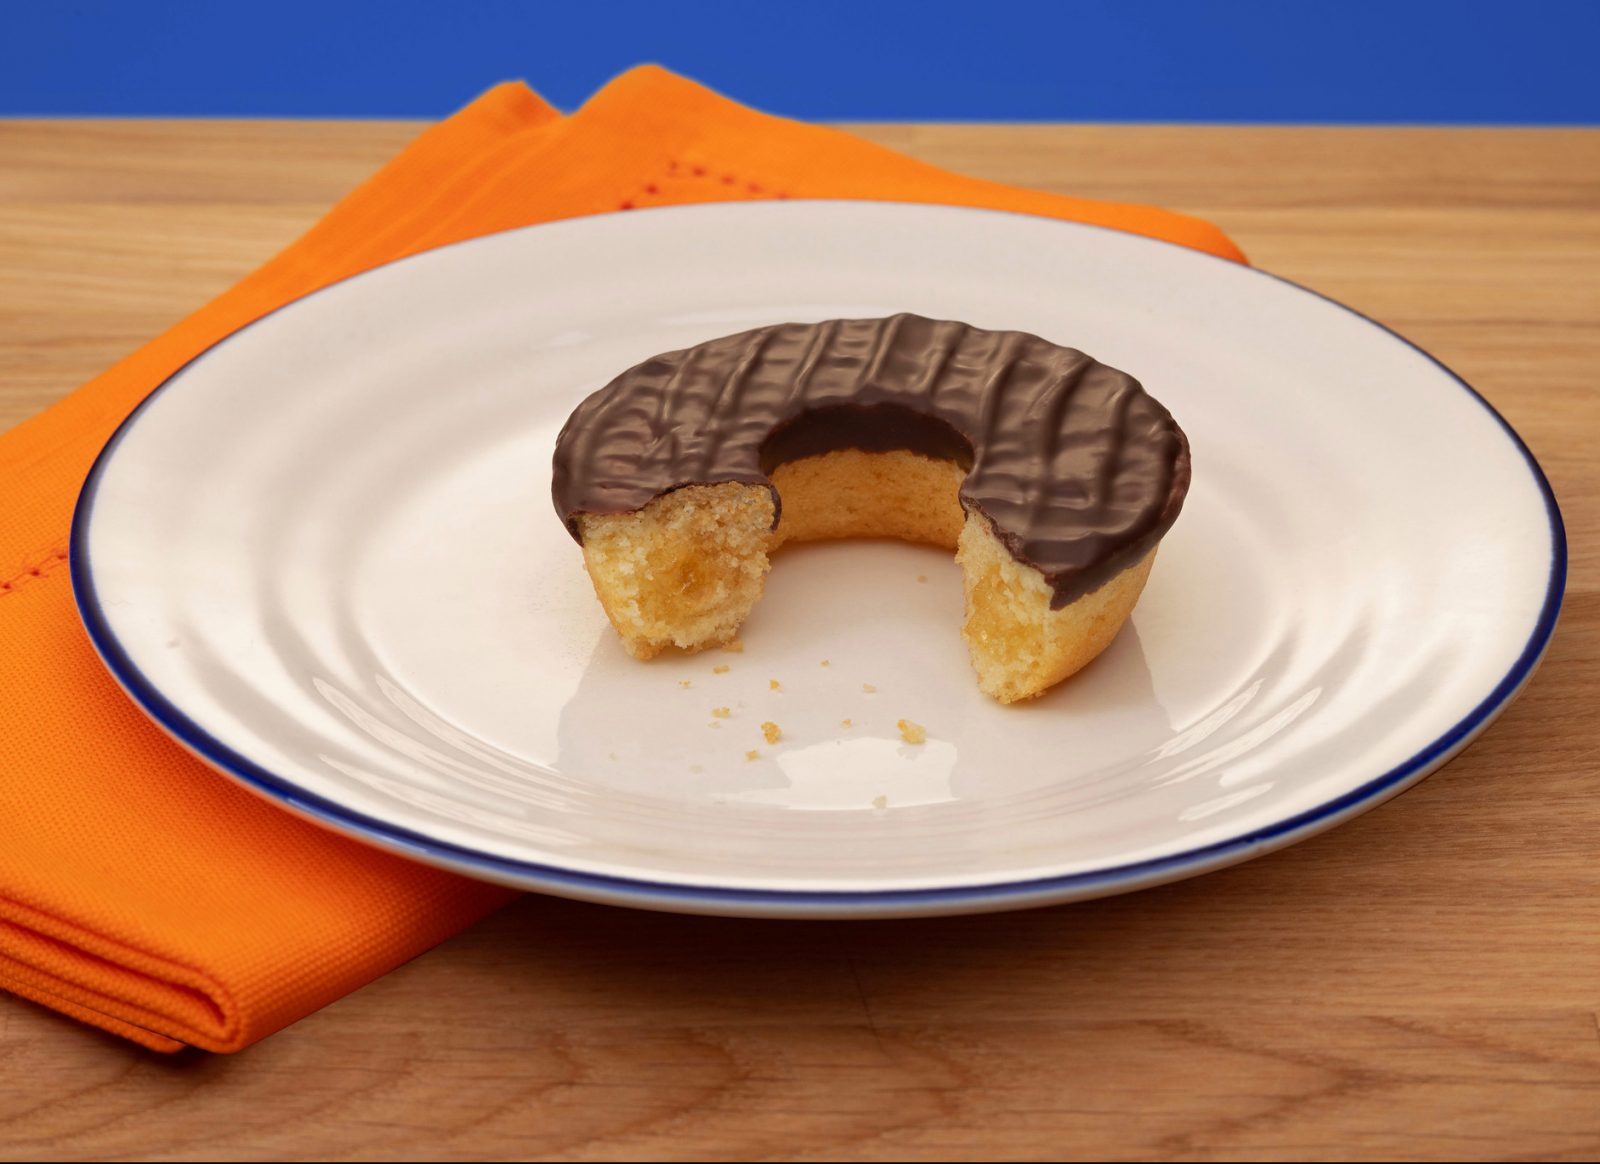 McVitie's is launching a new 'fusion' between Jaffa Cakes and doughnuts – and they're only 60p, The Manc